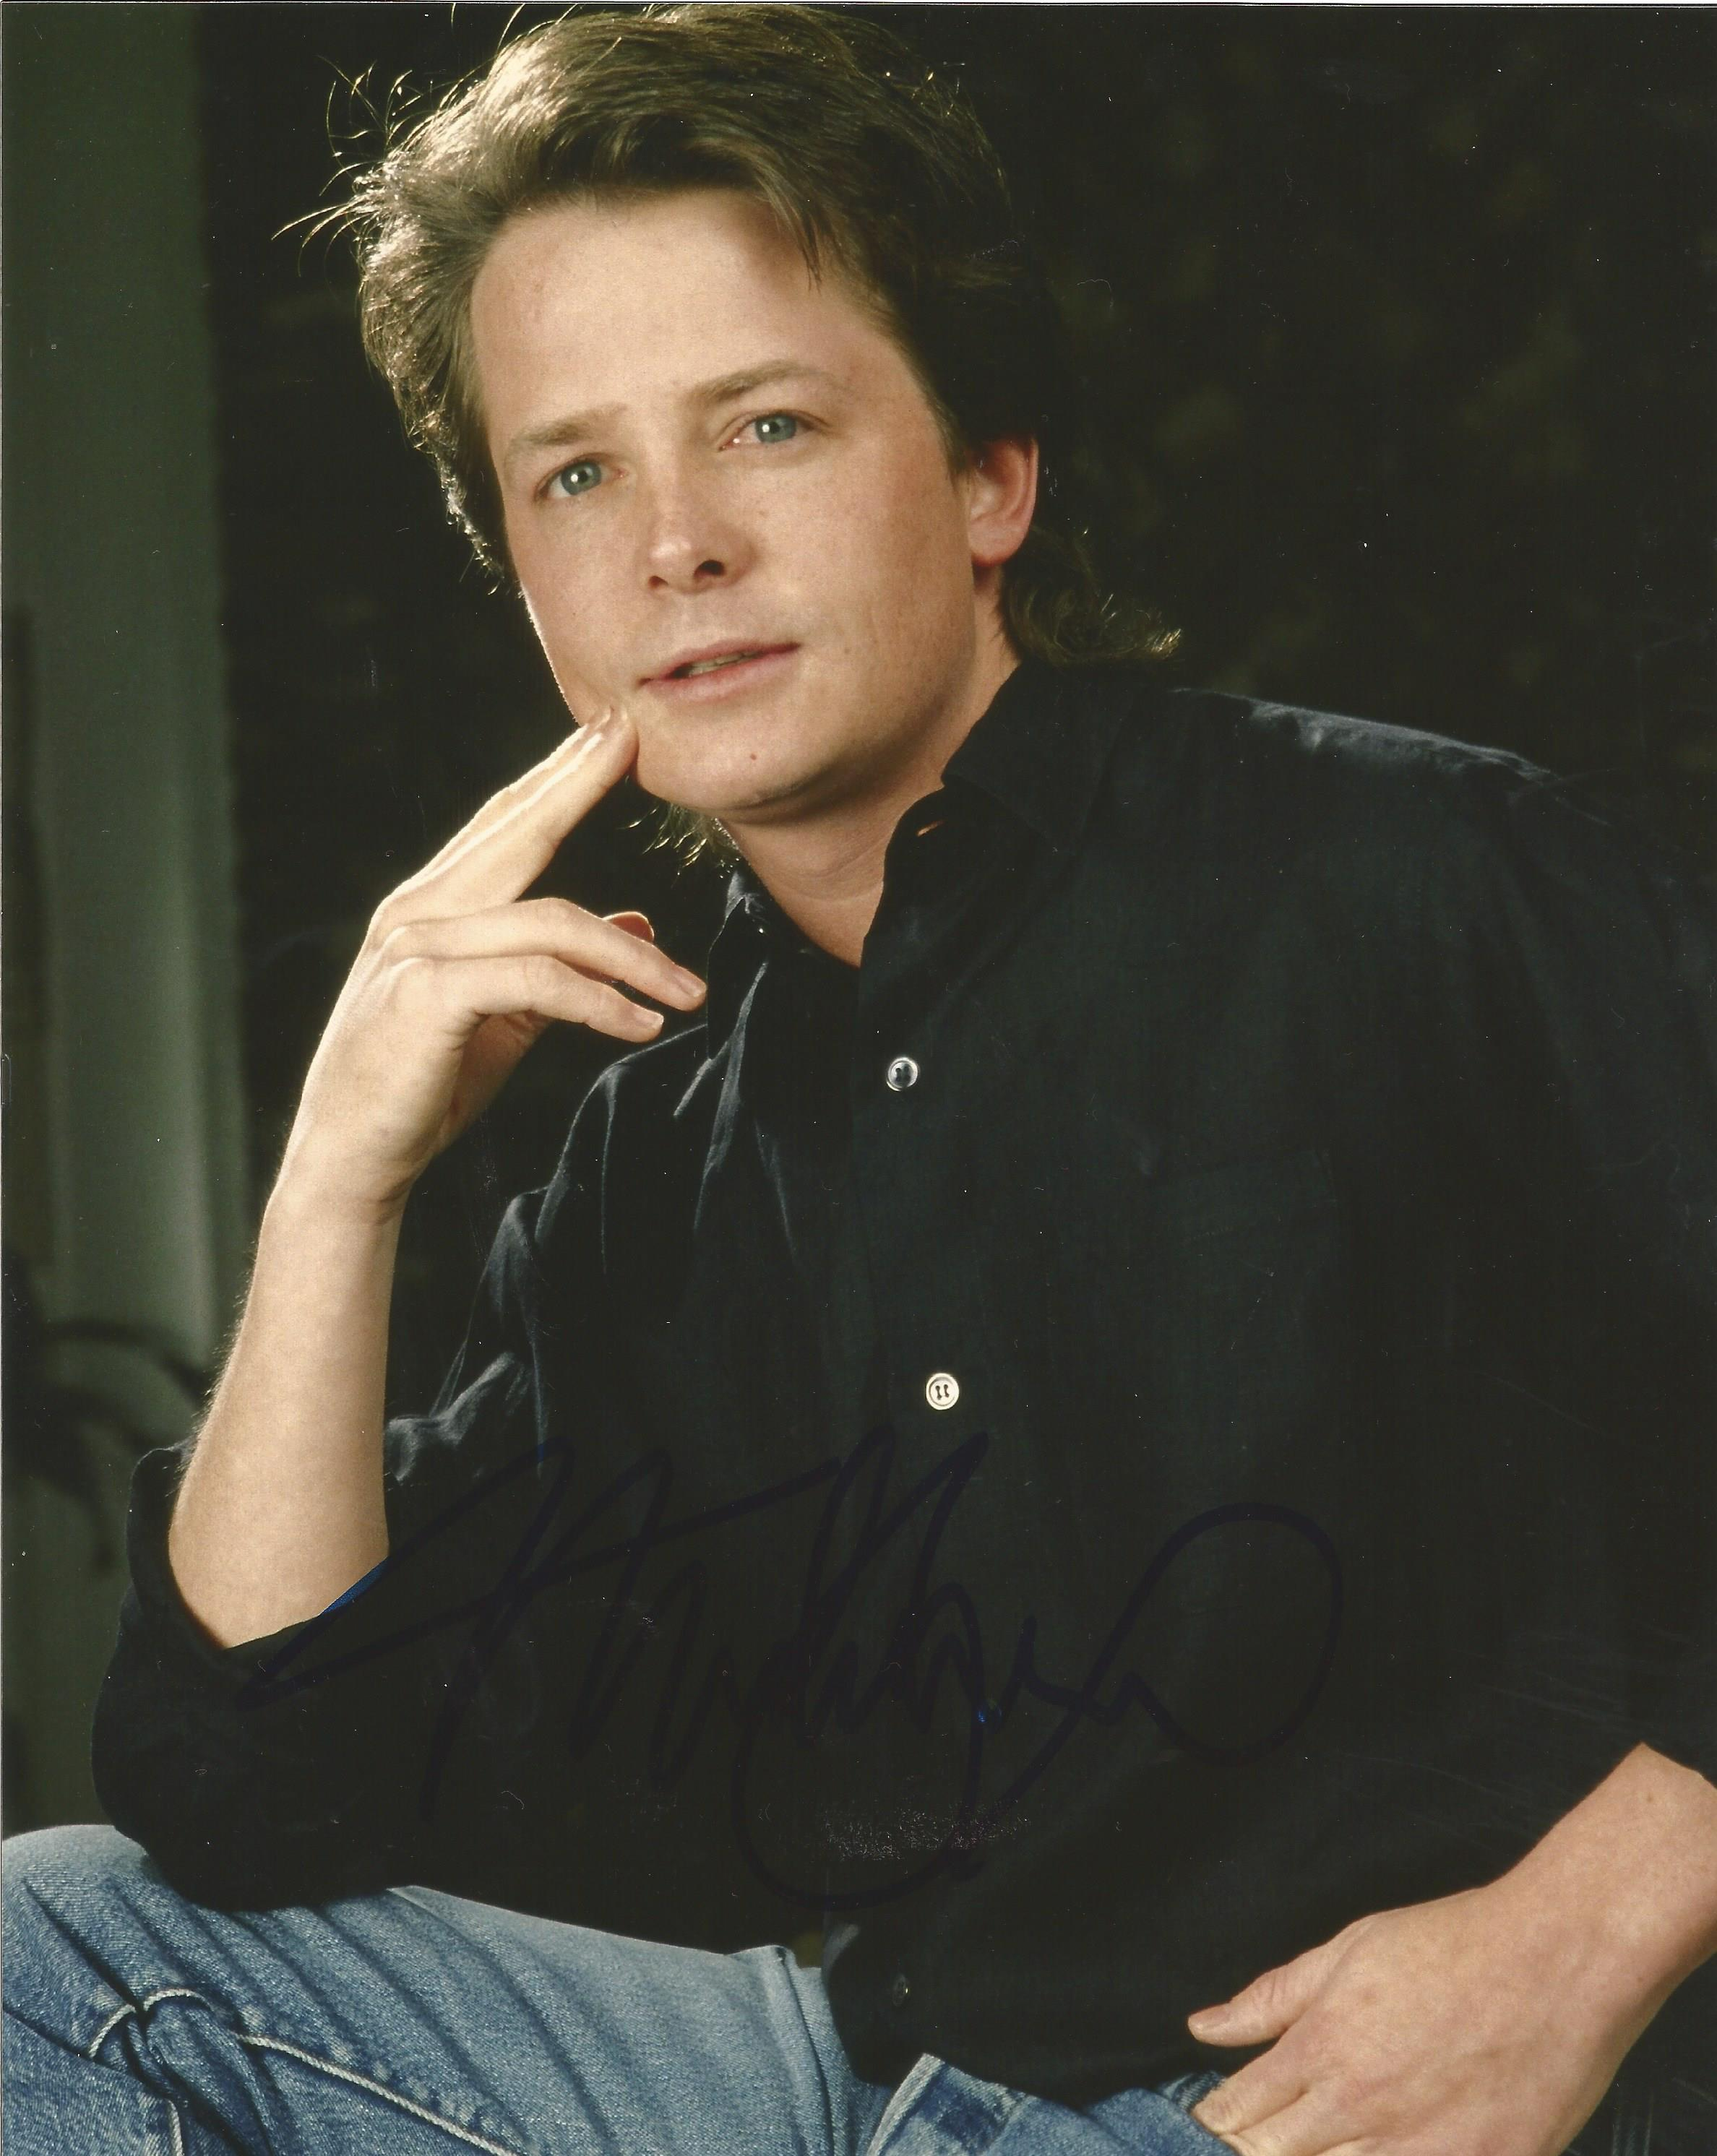 Lot 32 - Michael J Fox signed 10 x 8 colour Photoshoot Portrait Photo, from in person collection. Good